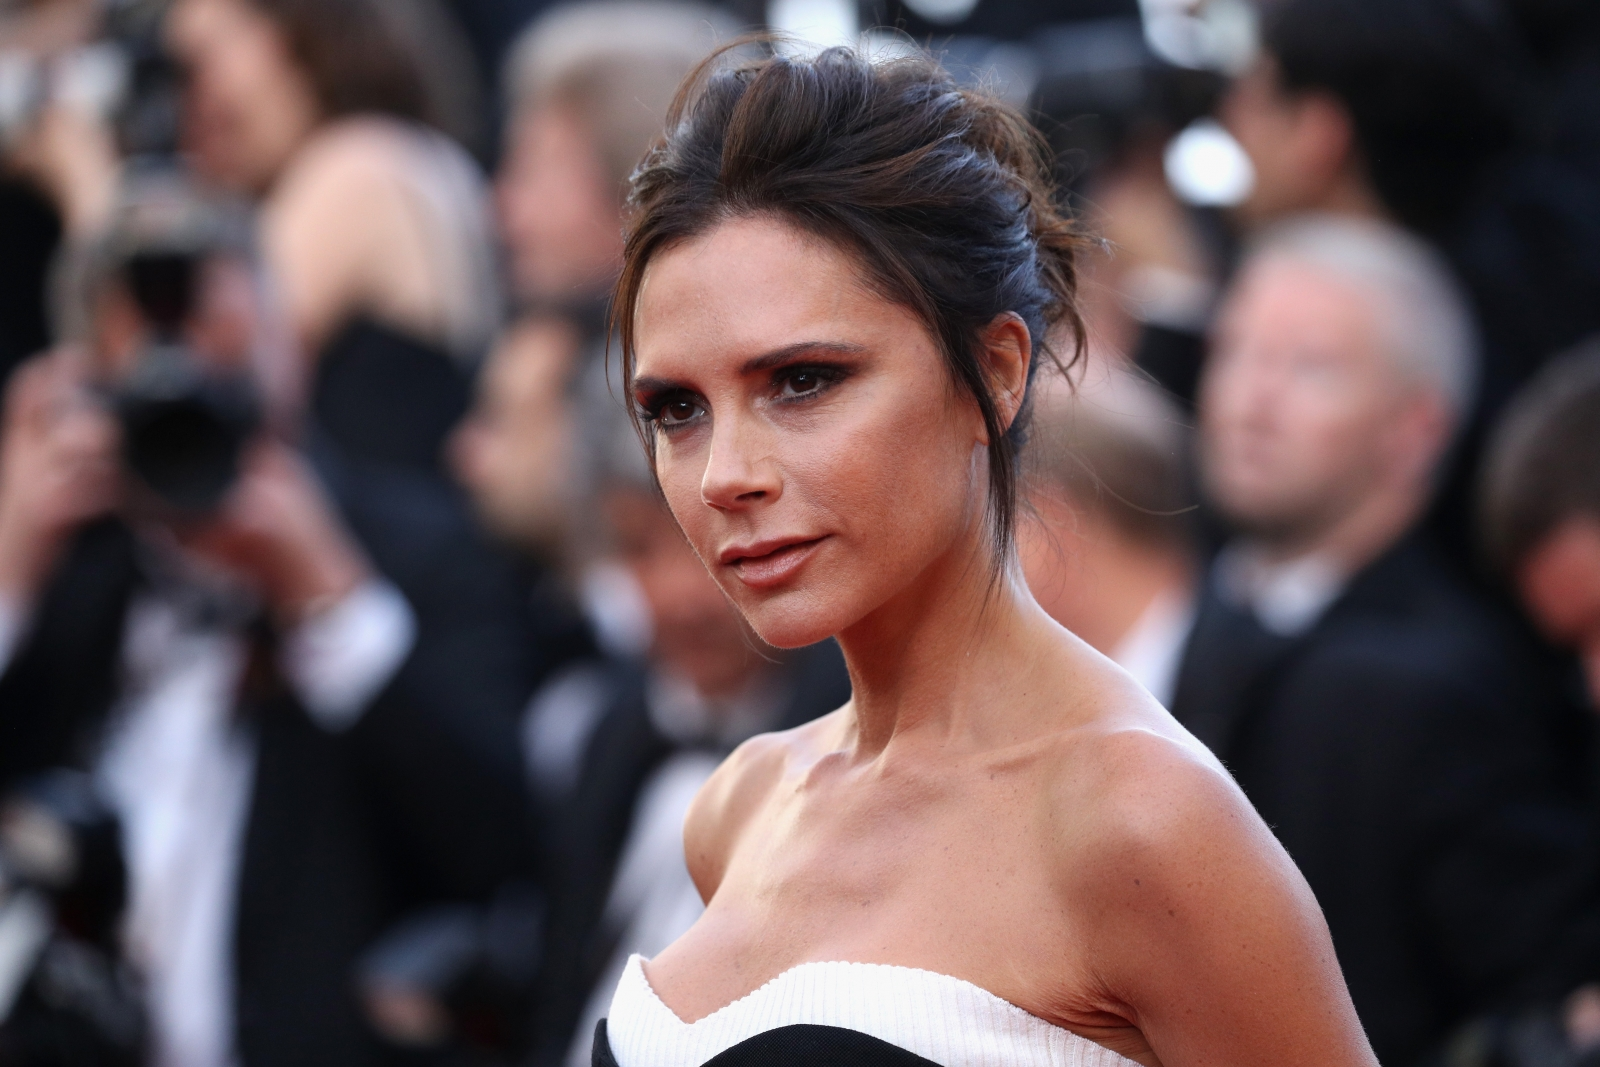 Victoria Beckham shares rare breast implant-free photo posing in black lingerie